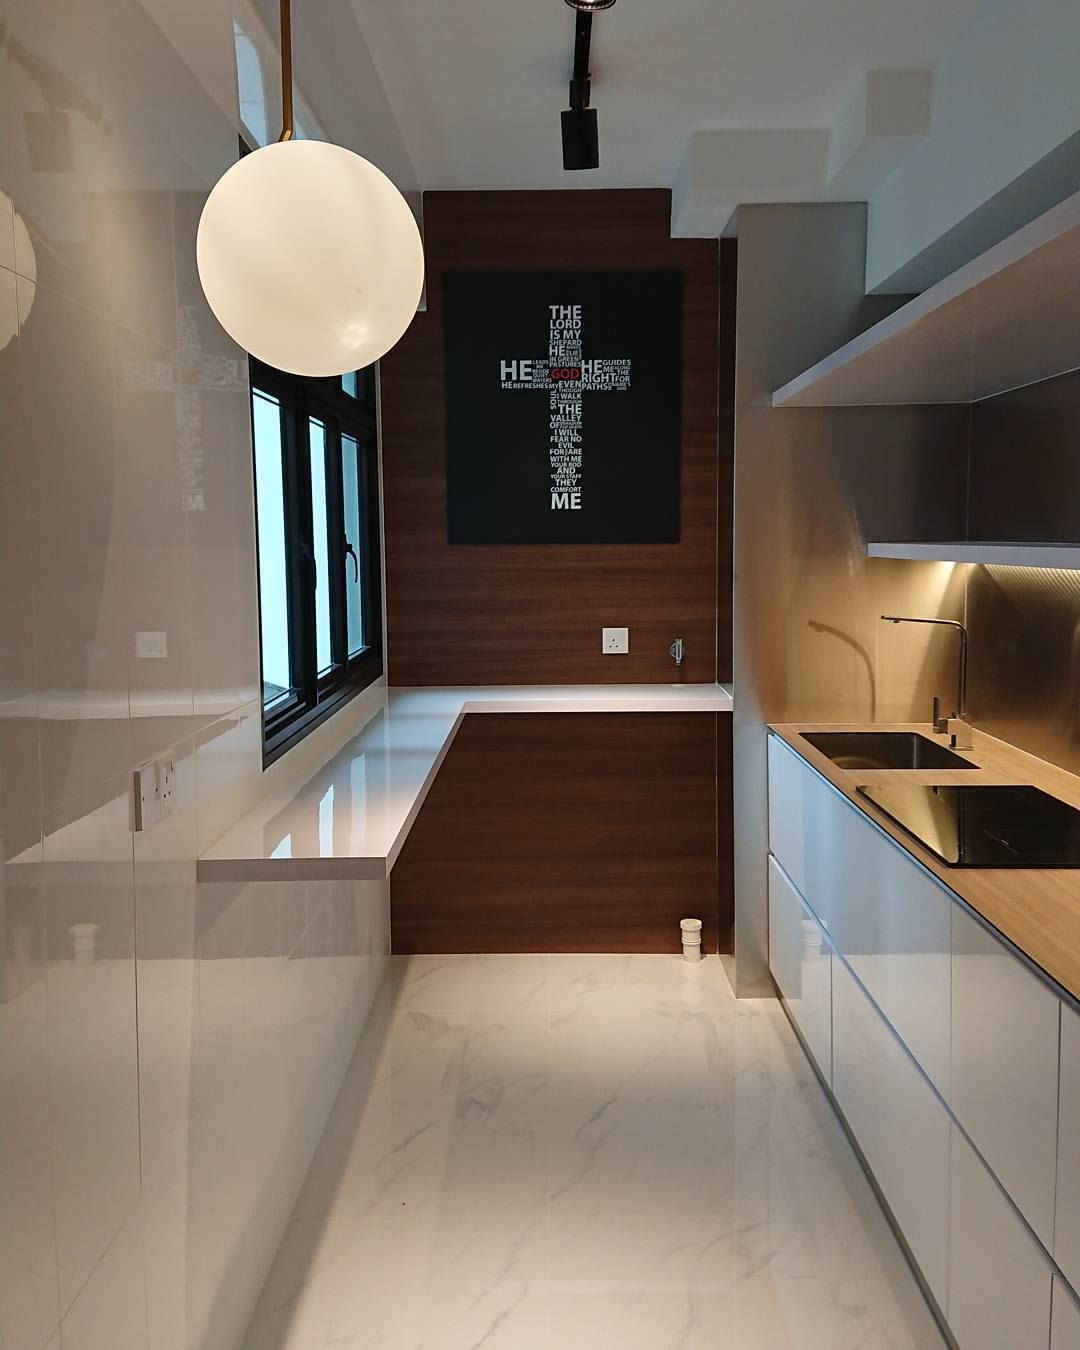 1st Interior Design Project Almost Completing 2 Room 47sqm Hdb Bto Fernvale Riverwalk Sengkang West Home Renovation Interior Design Kitchen Kitchen Design